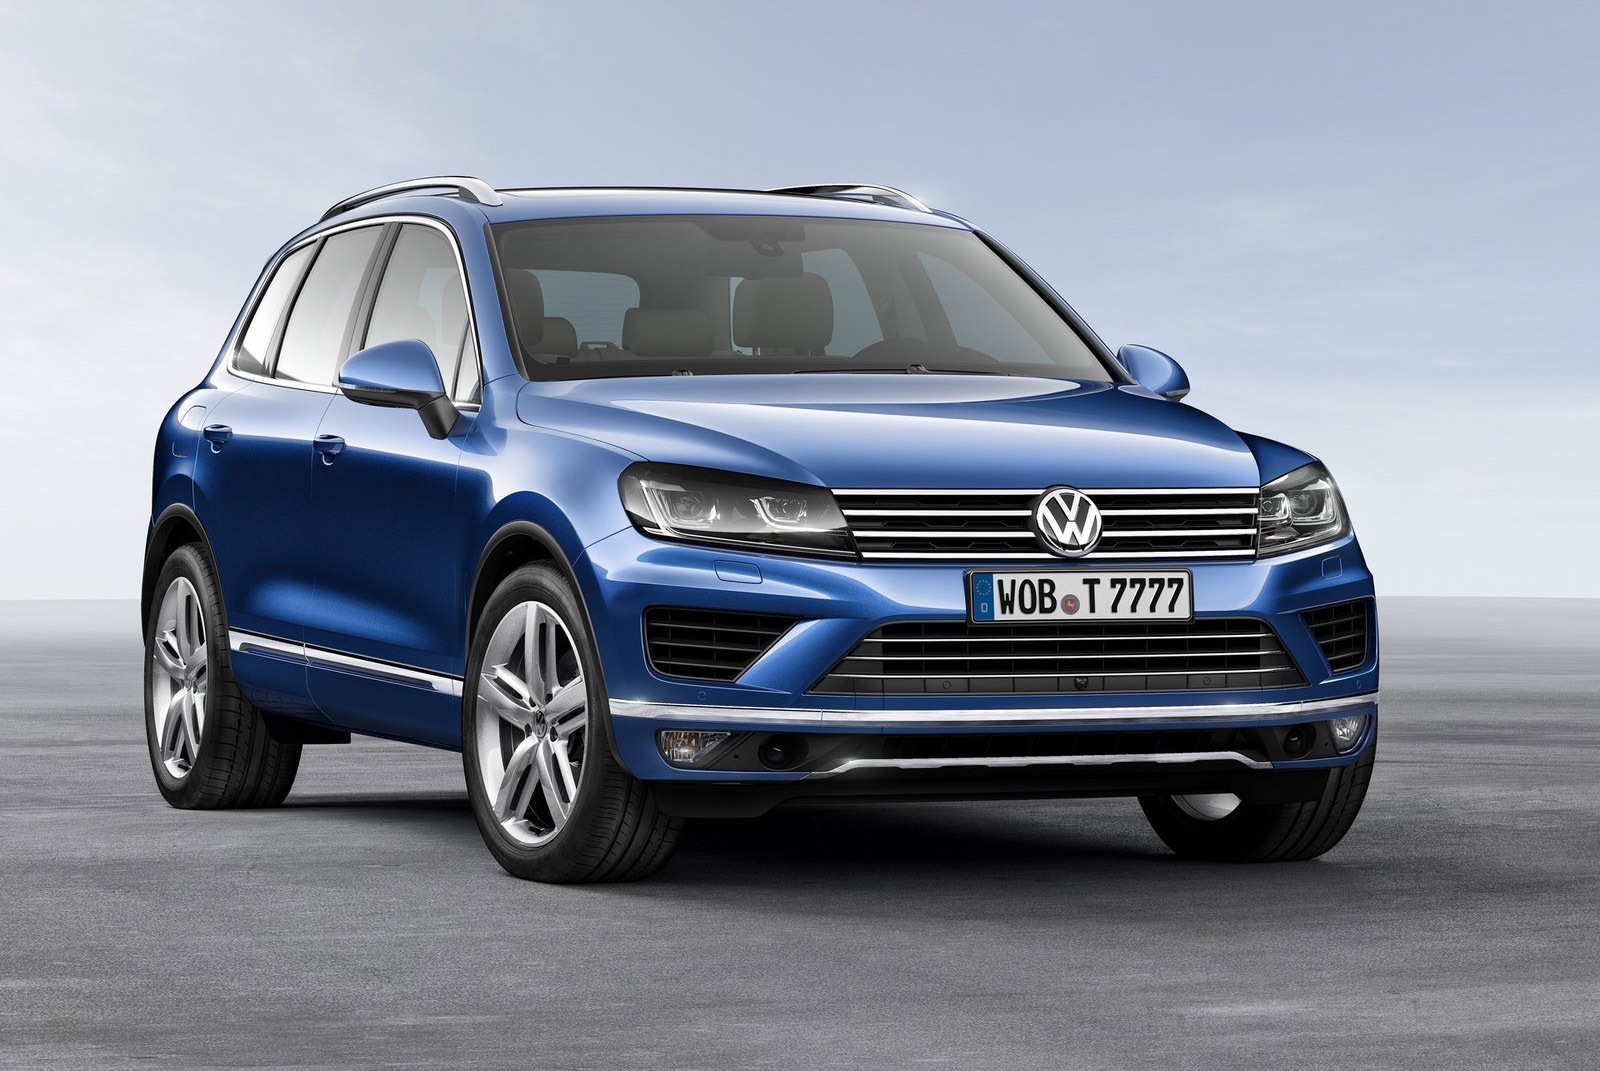 2015 Volkswagen Touareg Vw Review Ratings Specs Prices And Photos The Car Connection